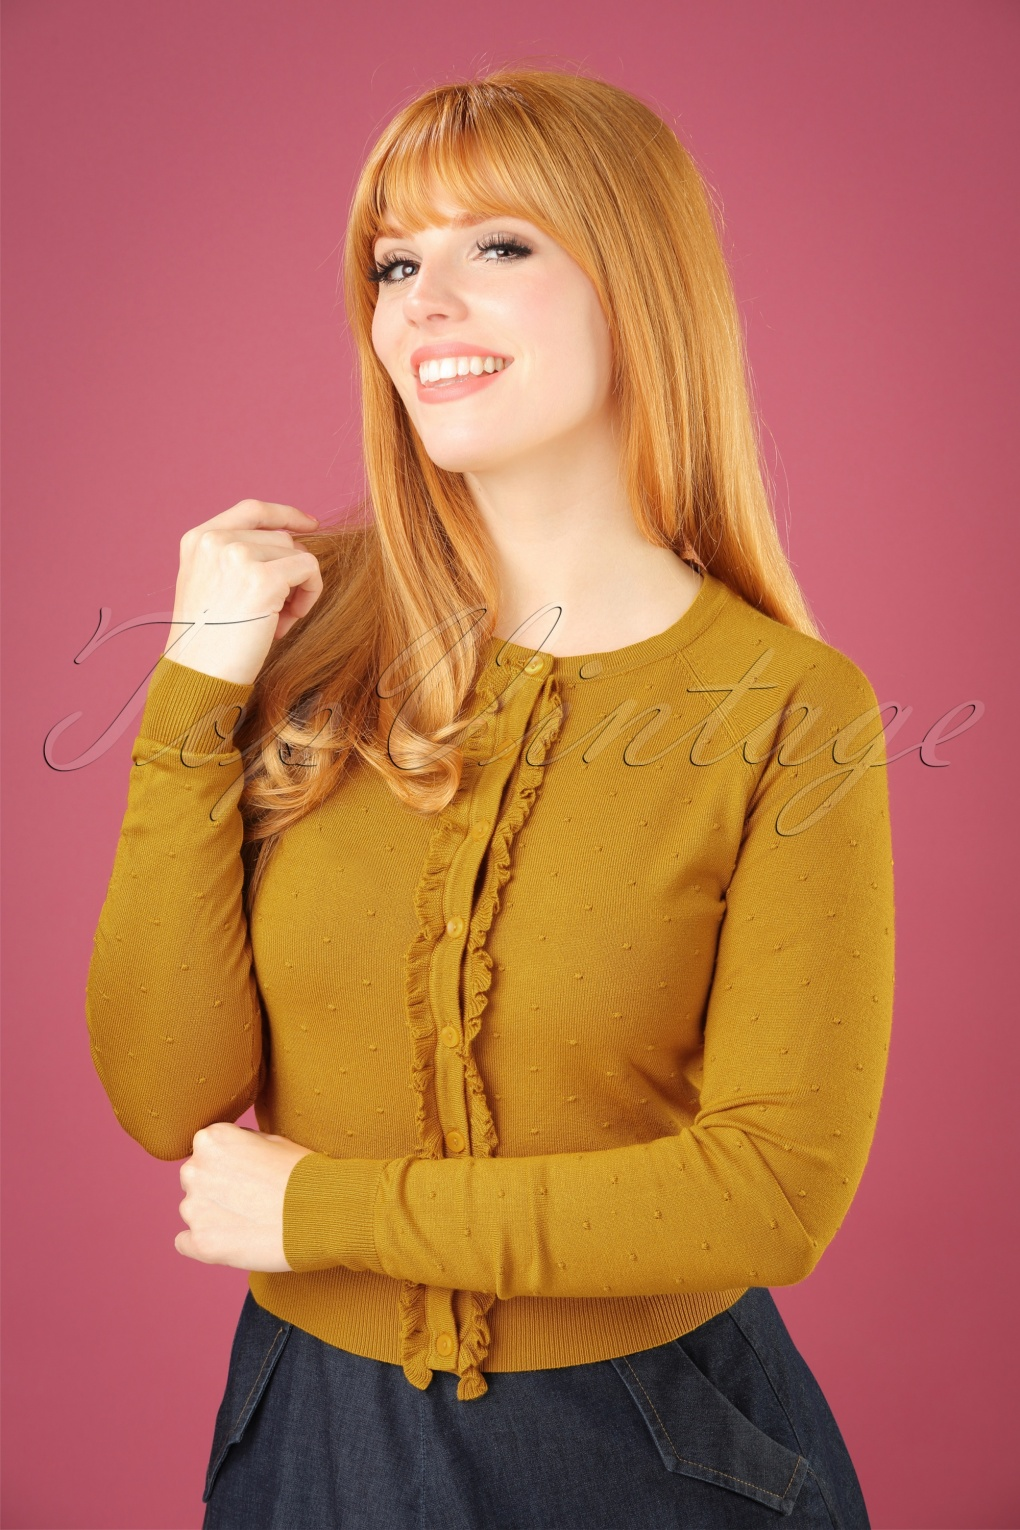 Retro Vintage Sweaters 60s Ruffle Droplet Fantasy Cardi in Yellow £61.73 AT vintagedancer.com